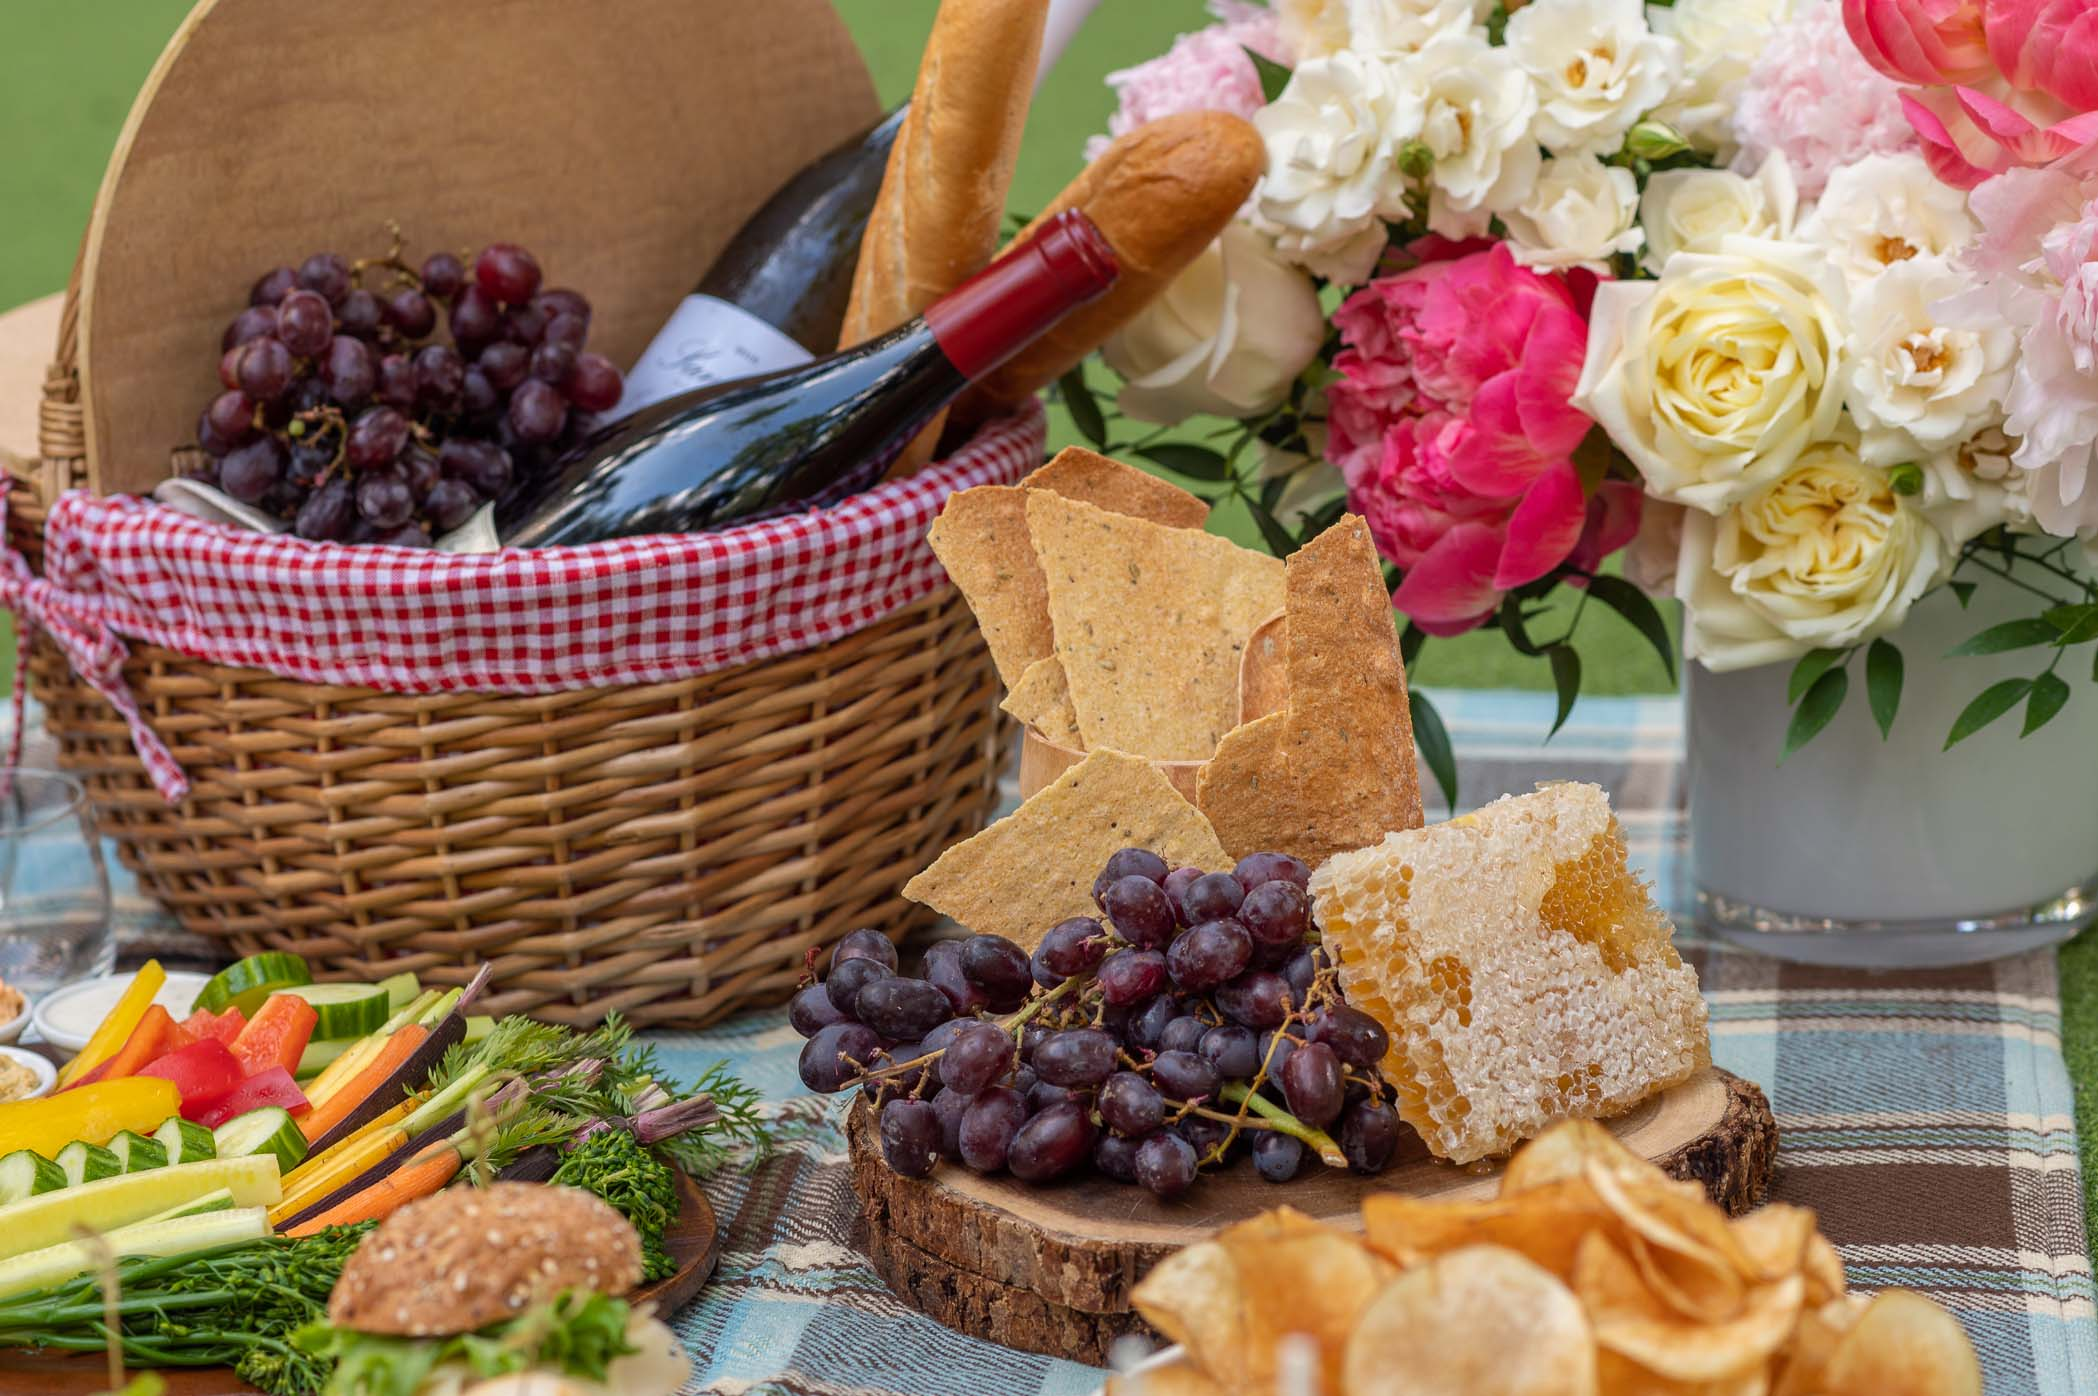 Picnic spread with basket and lots of food and wine